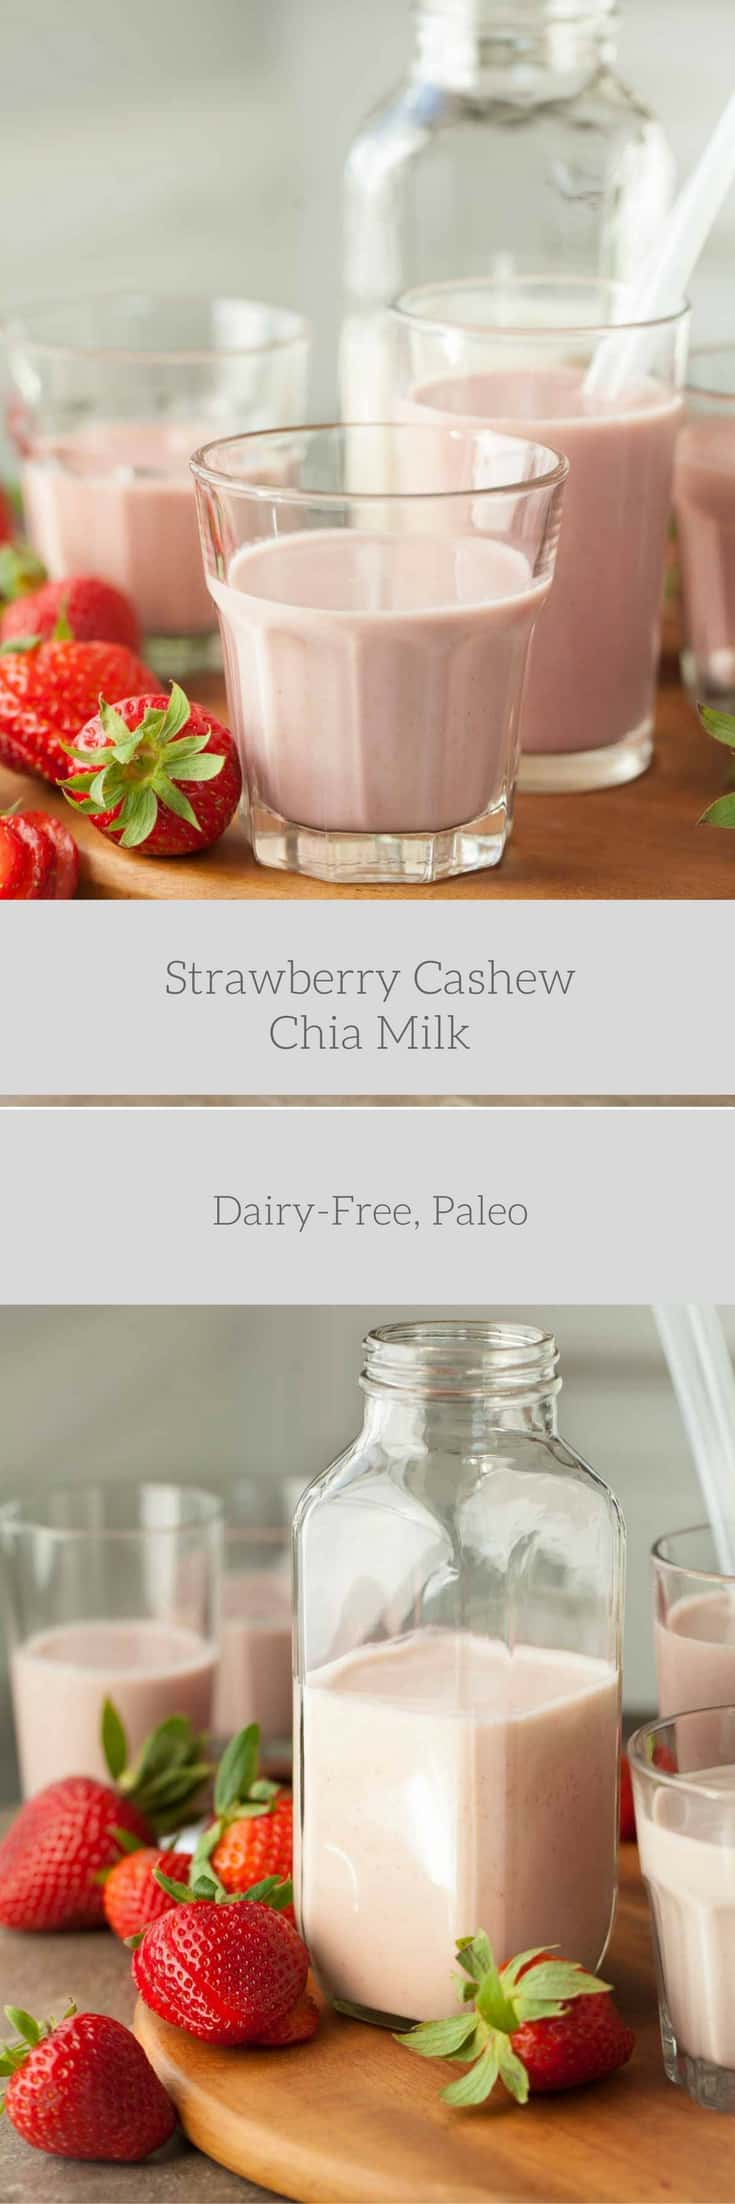 Strawberry Cashew Chia Milk (Dairy-Free, Paleo) | Gourmande in the ...